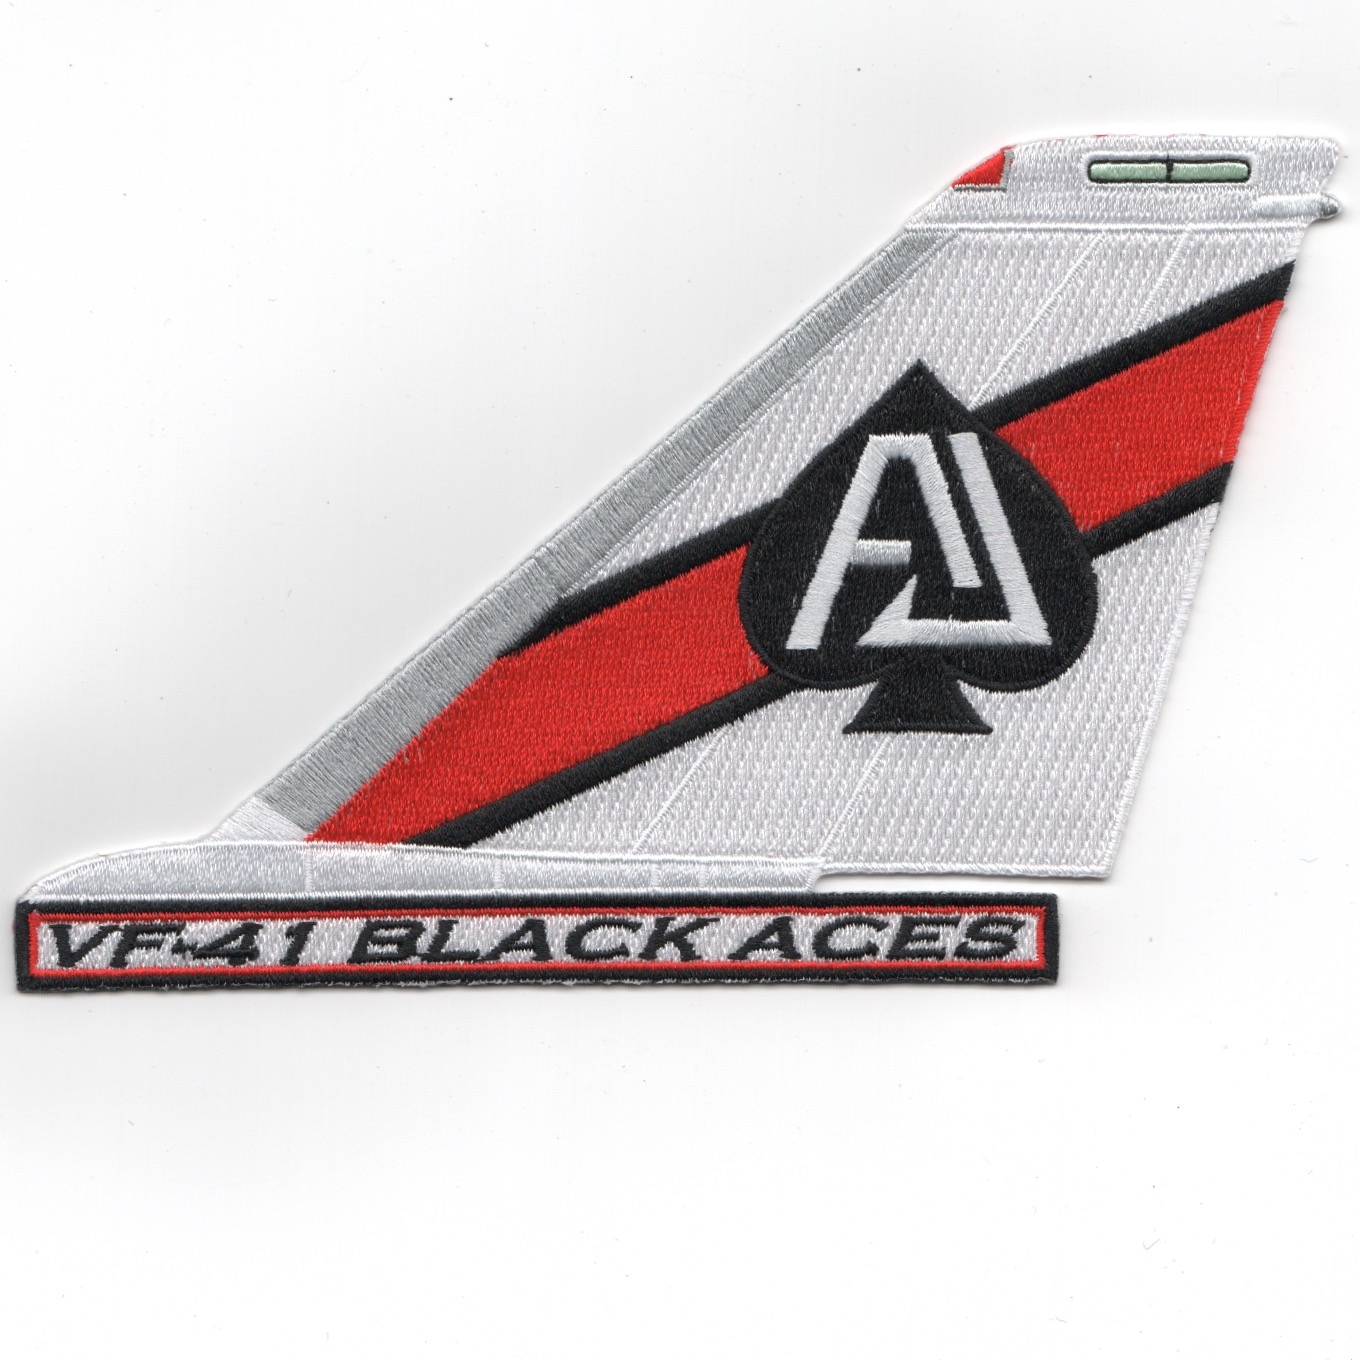 VF-41 F-14 'AJ' Tail (Red-White/Text)